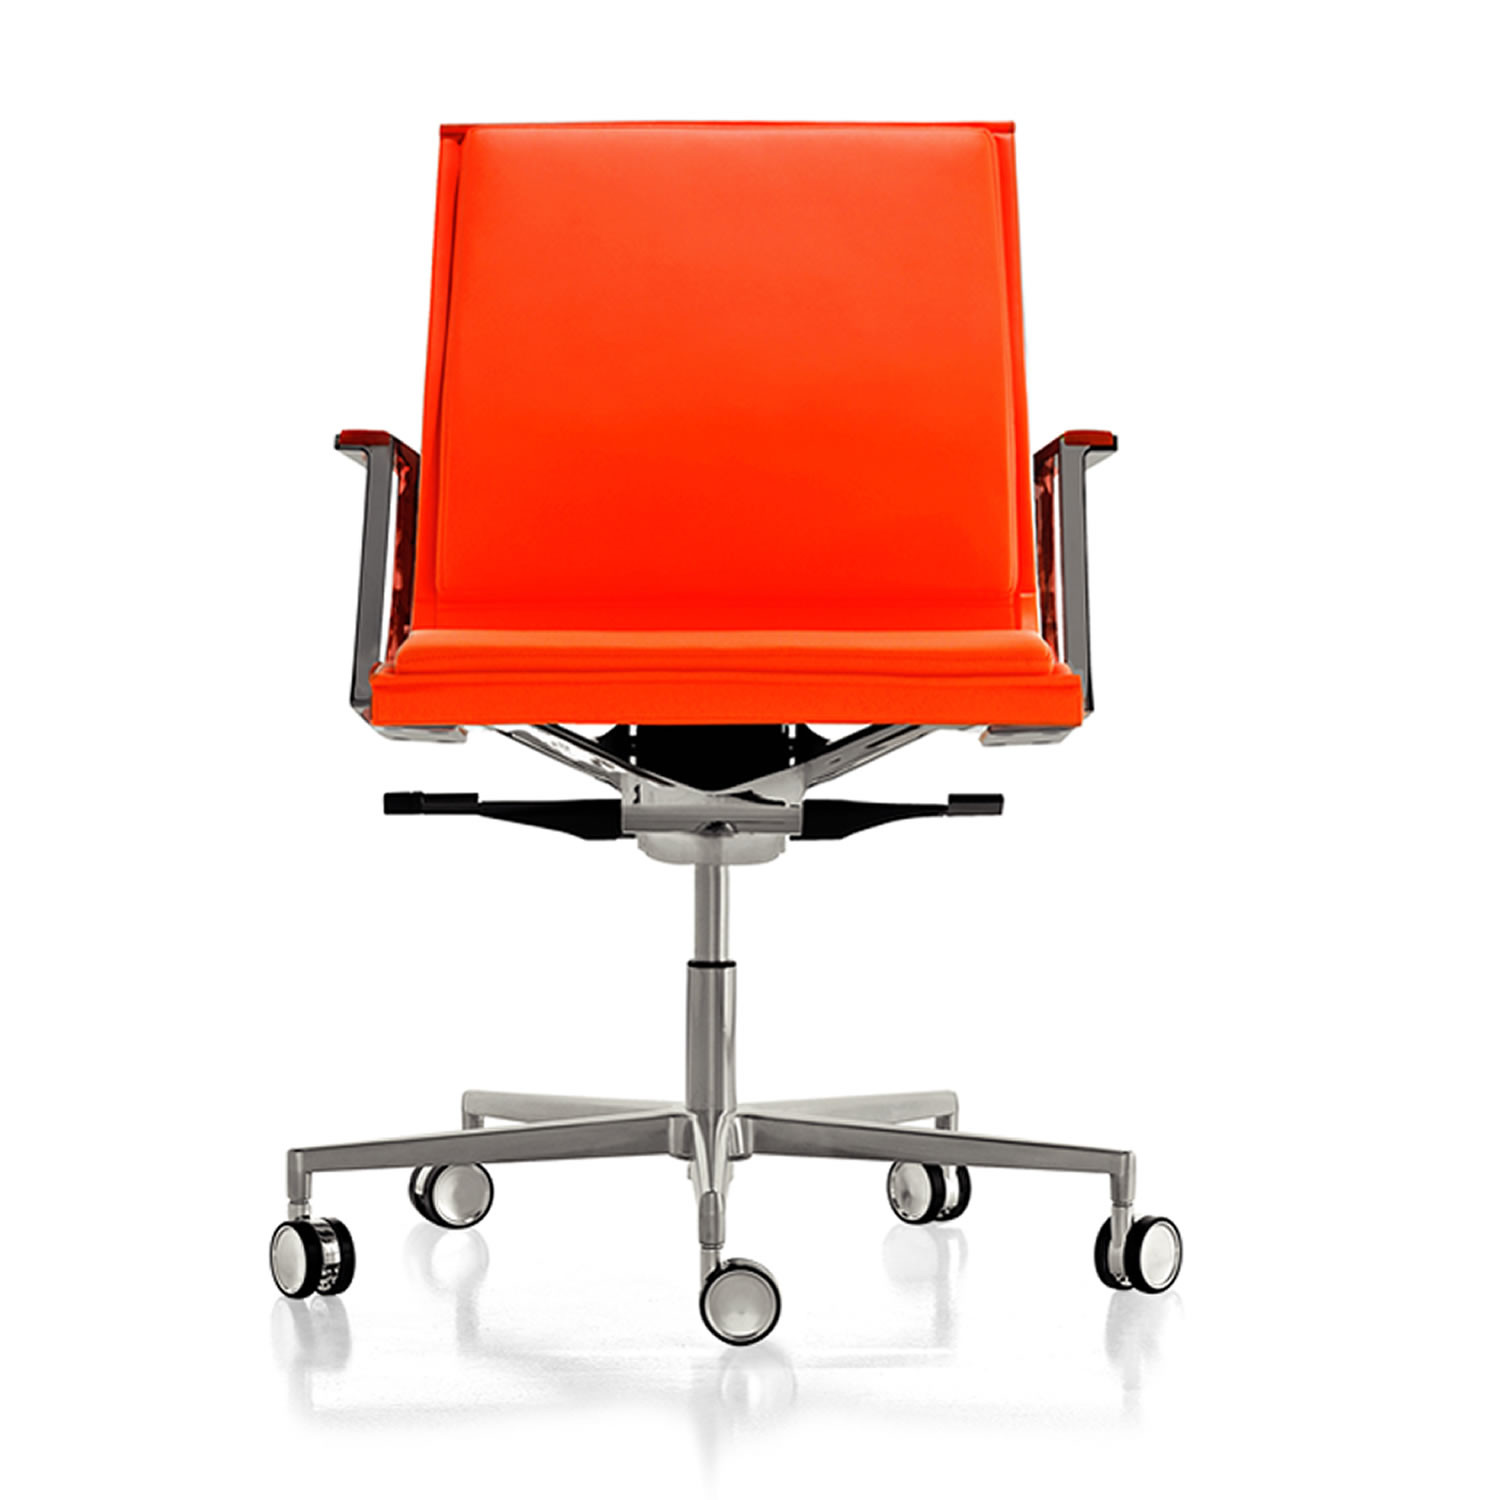 Nulite Chair with Medium Backrest